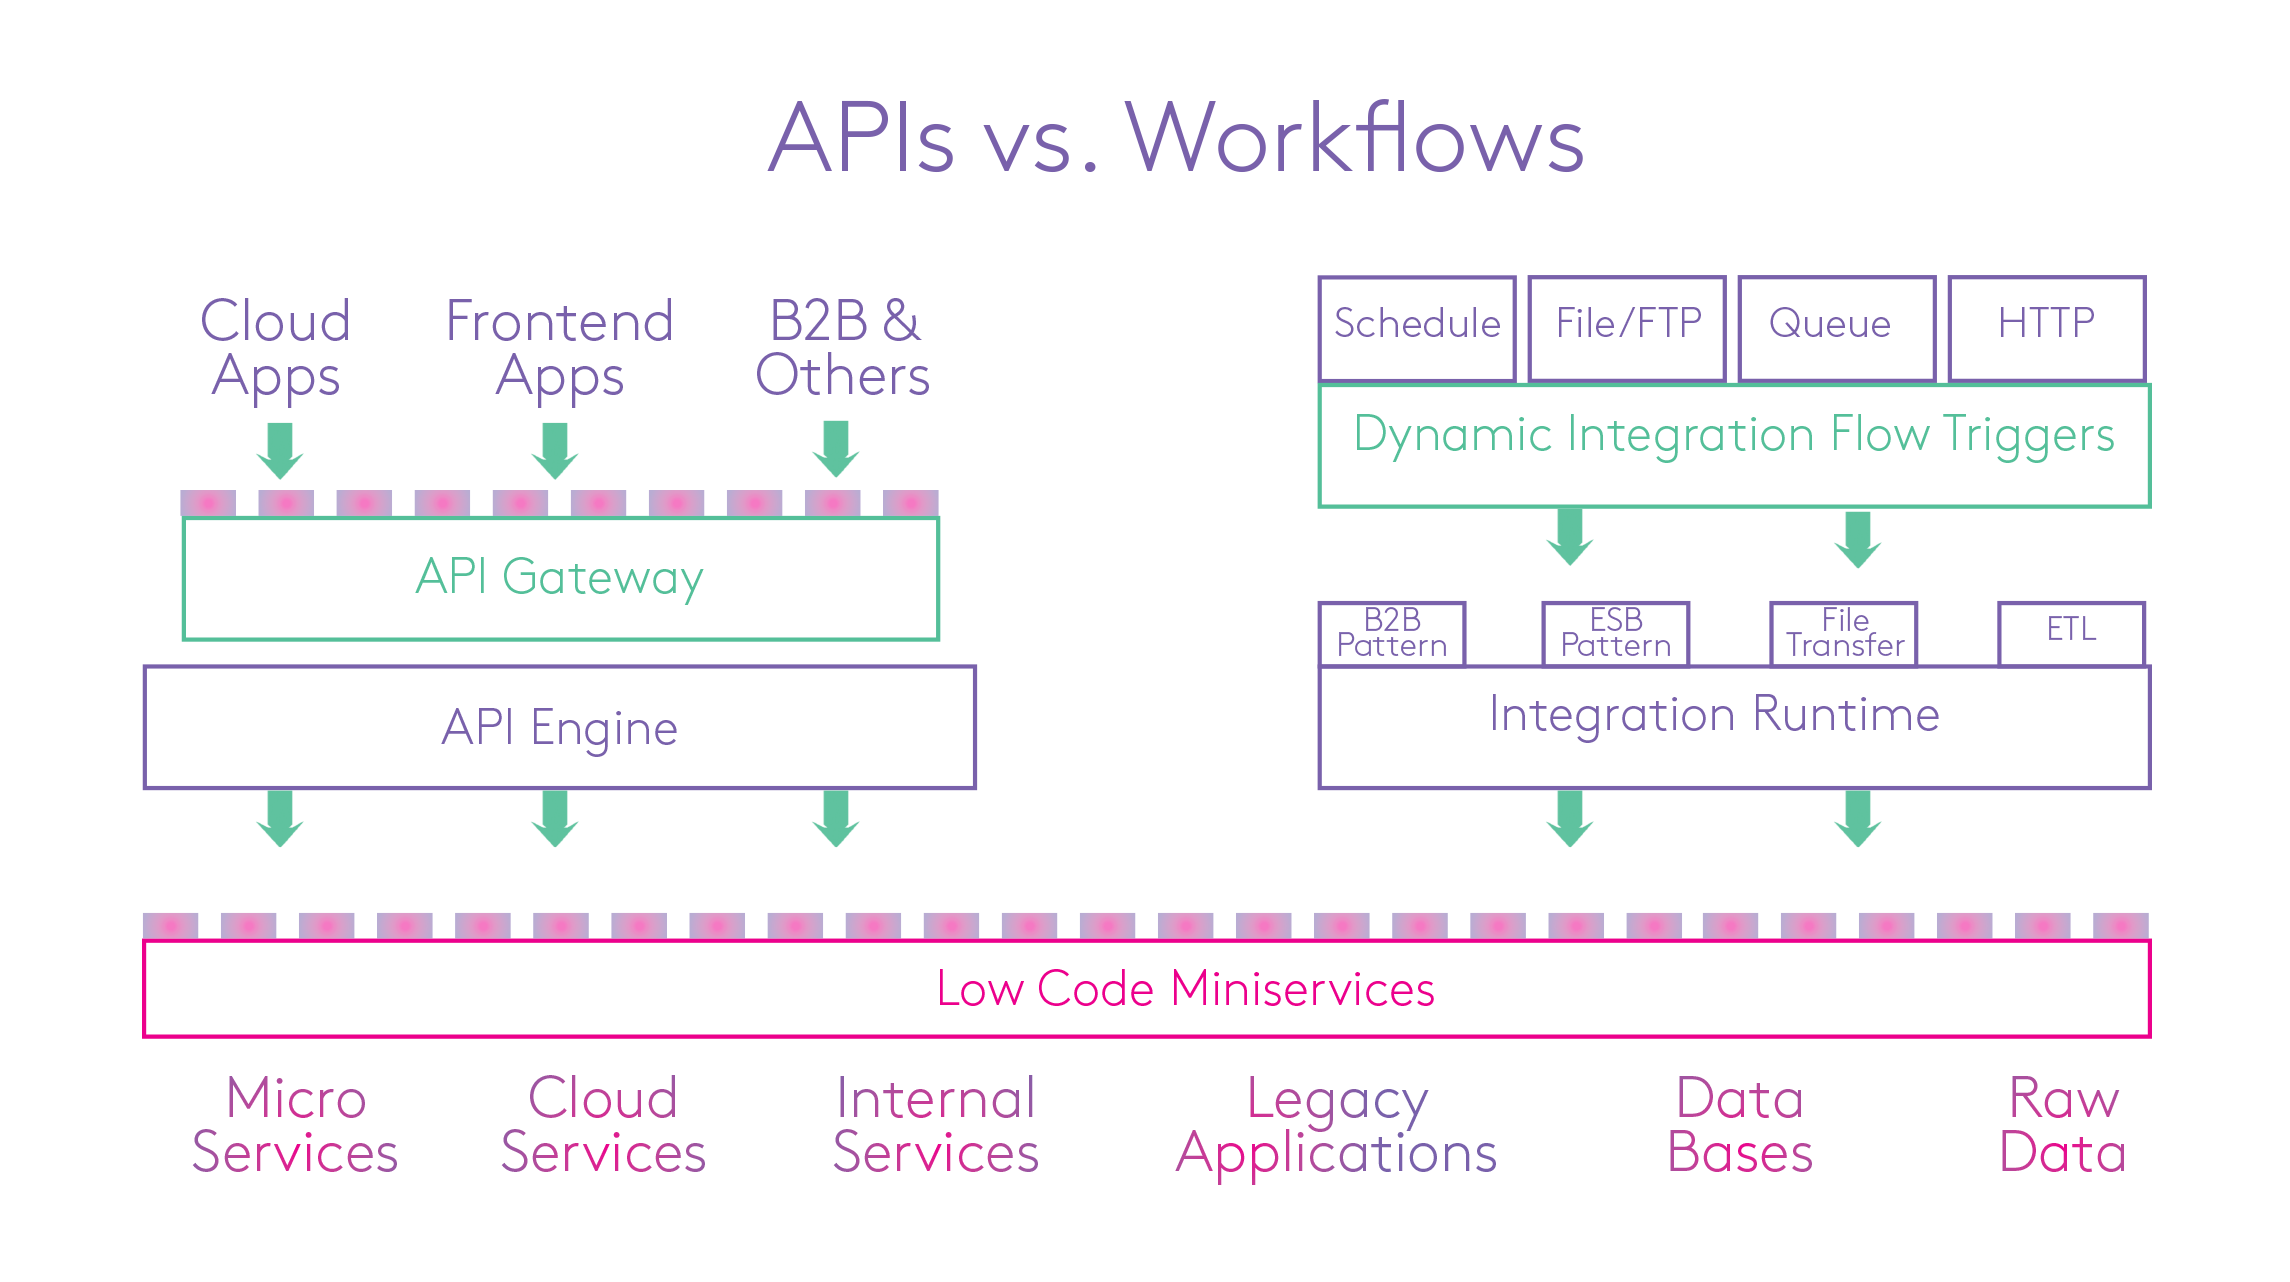 Different use cases of APIs and workflow integrations